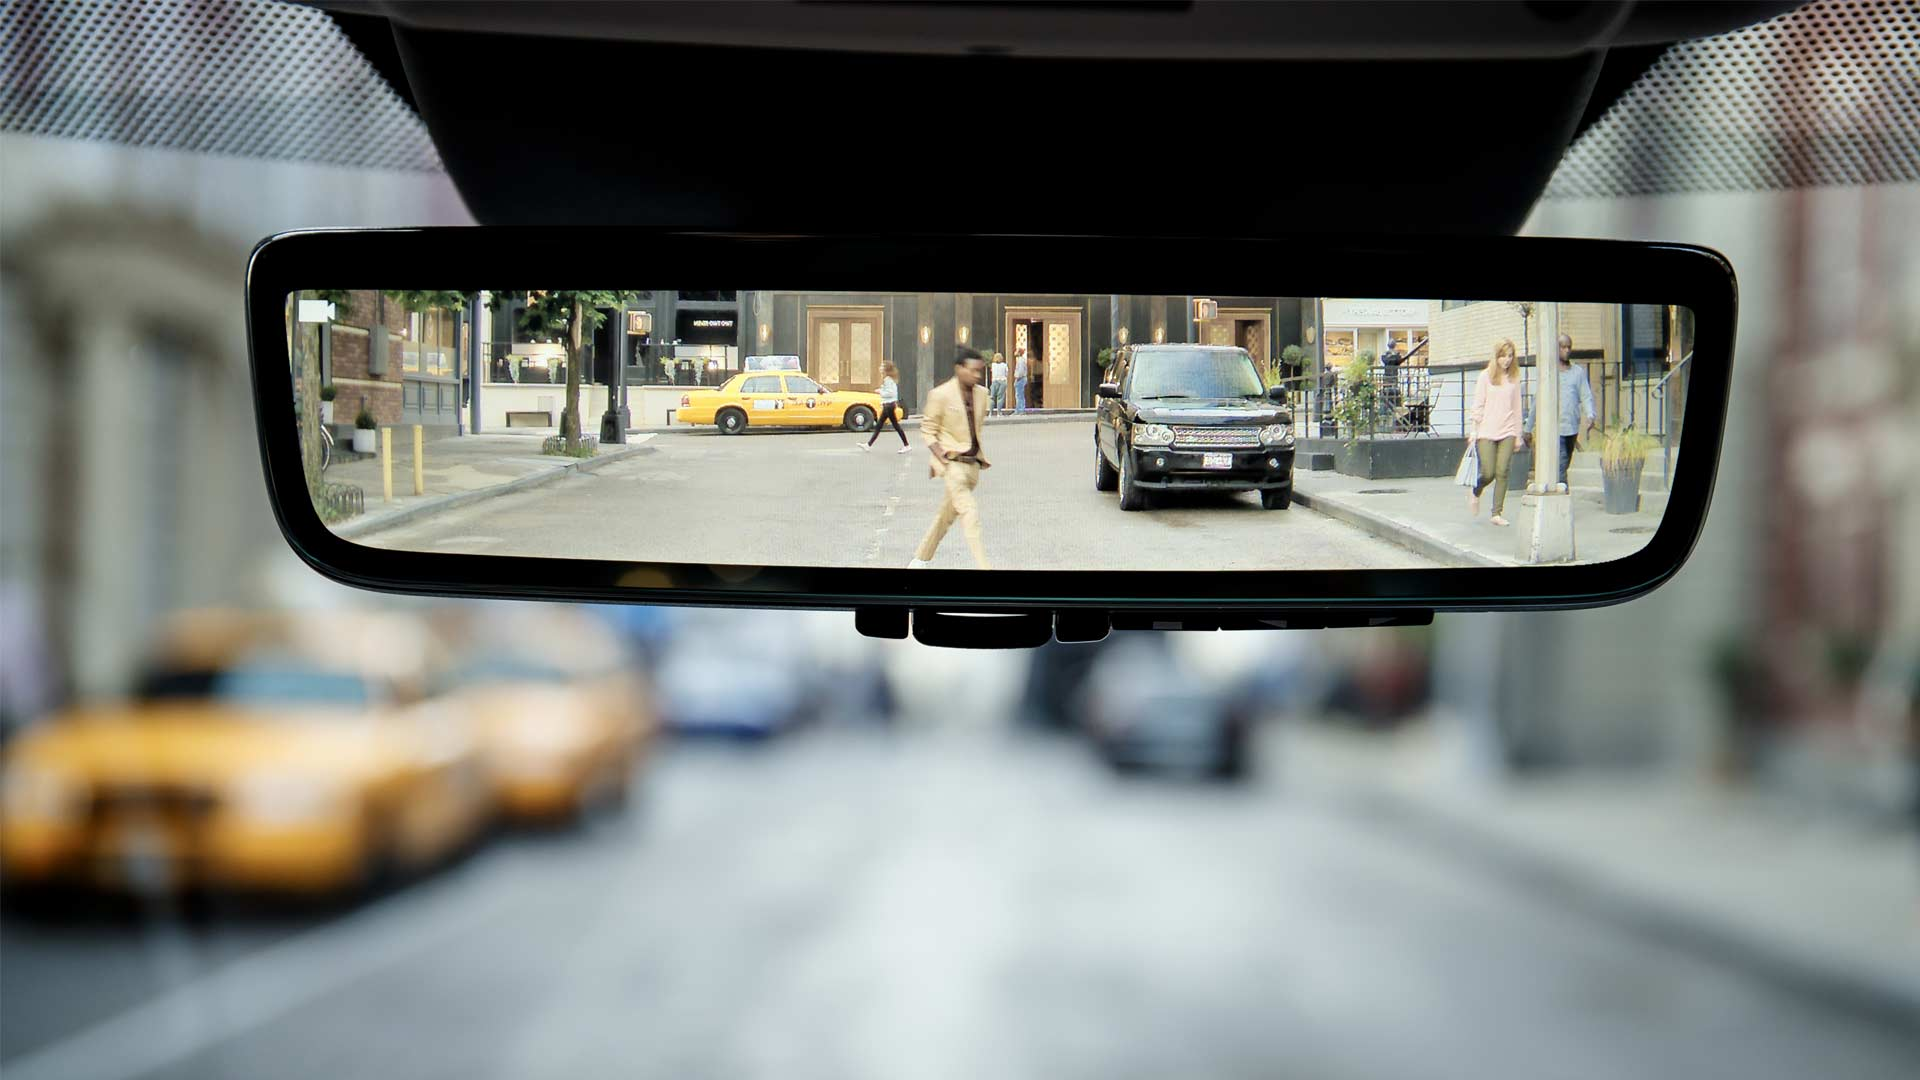 2020-Range-Rover-Evoque-Clearsight-Rearview-Mirror